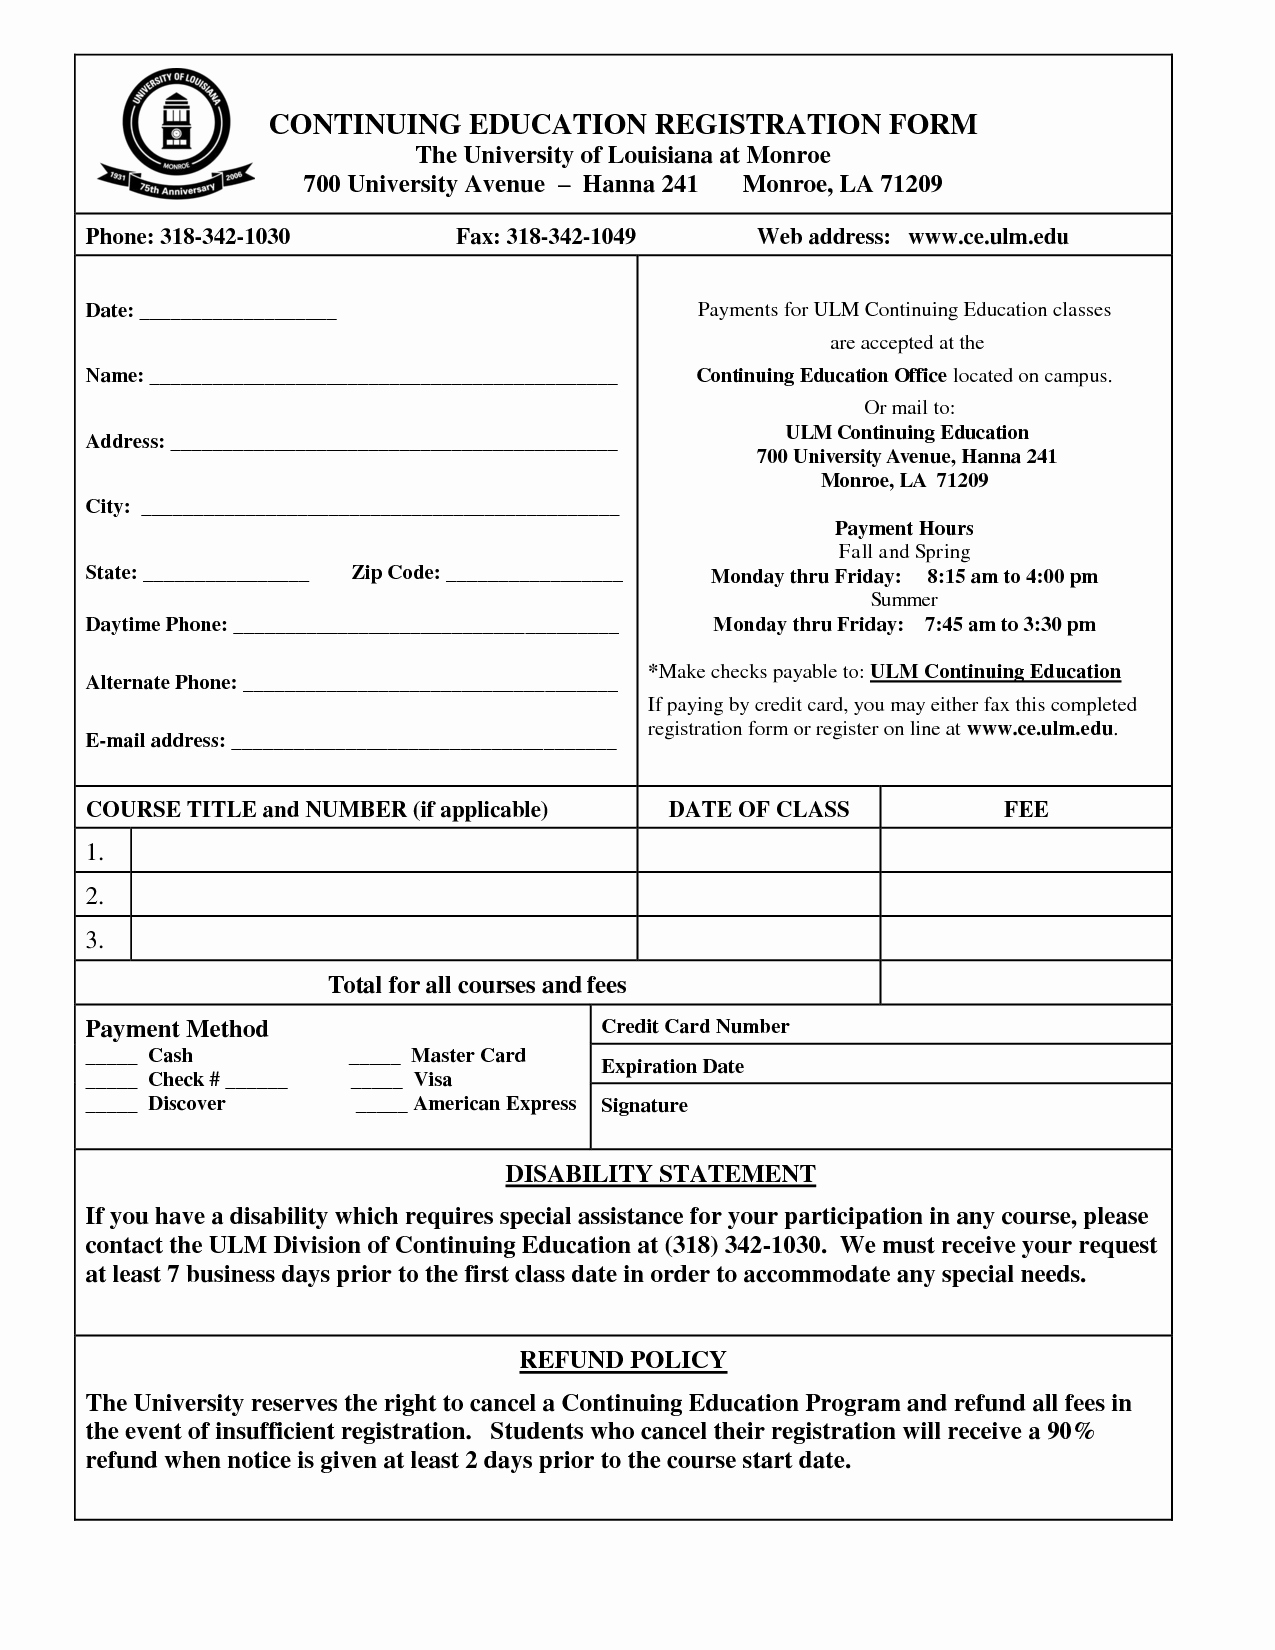 Camp Registration form Template Word Inspirational Registration form Template Word